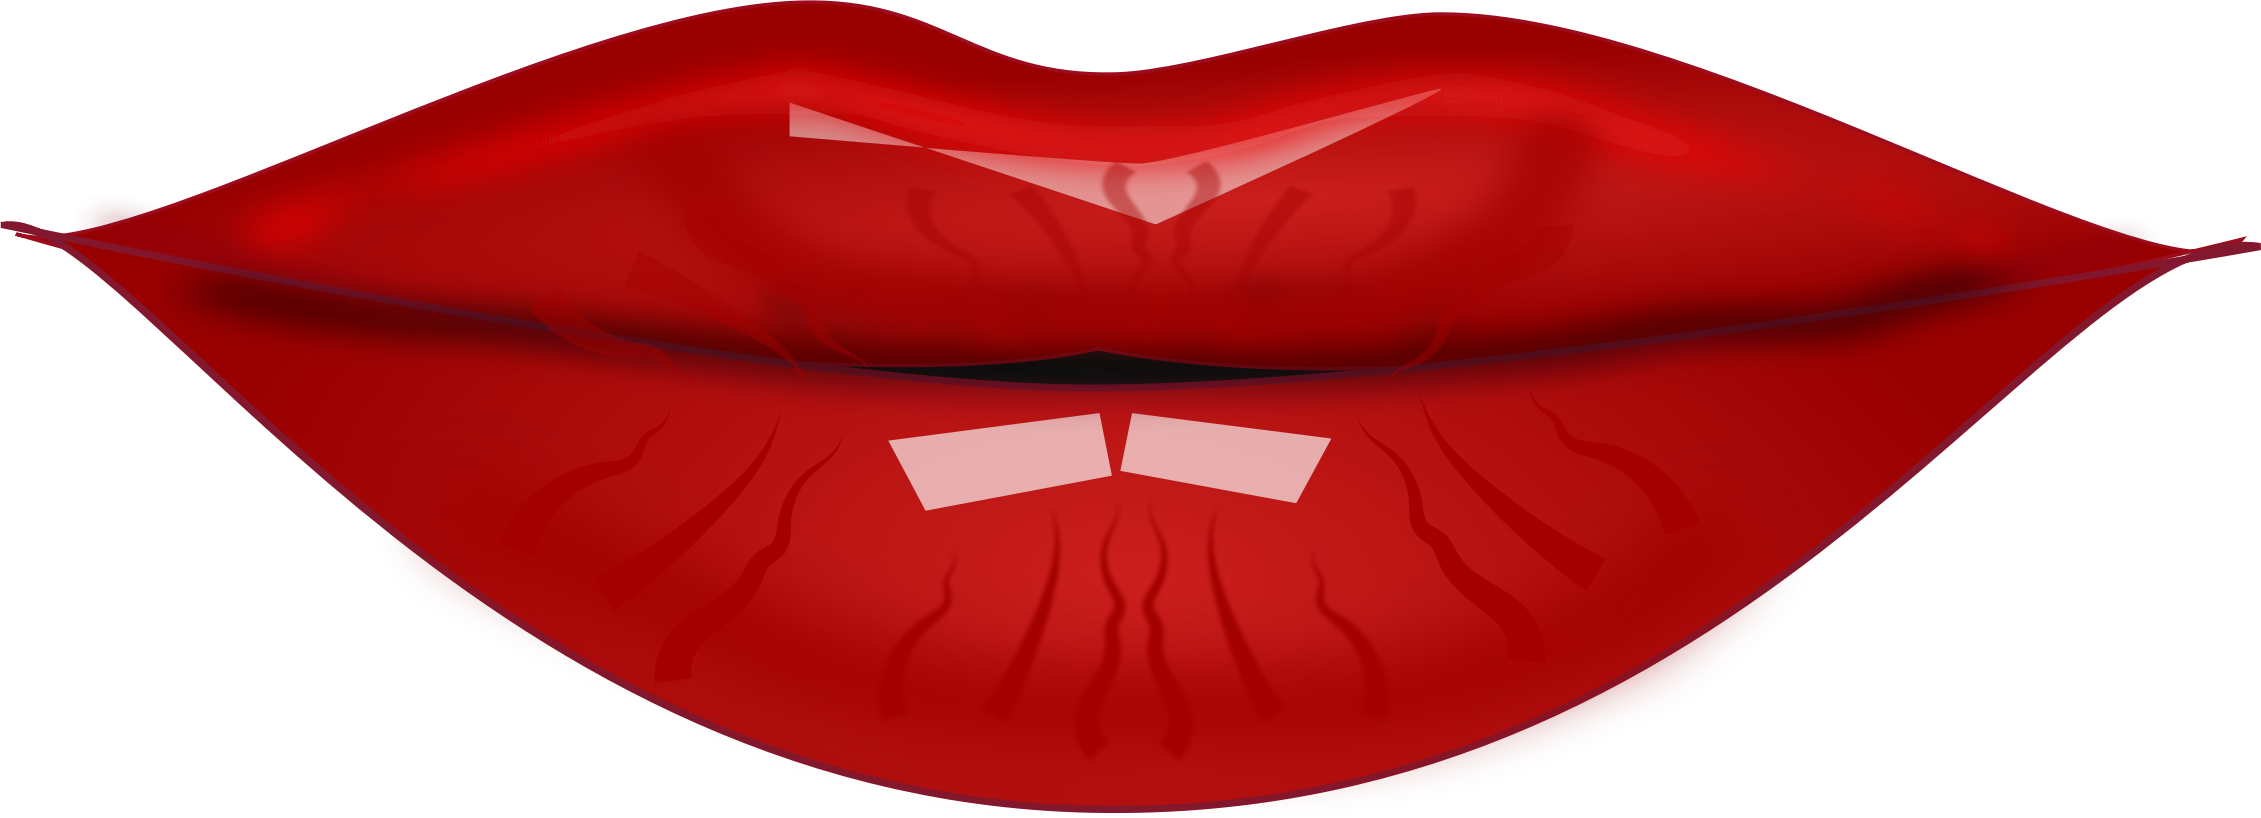 Lips png. Transparent images all picture